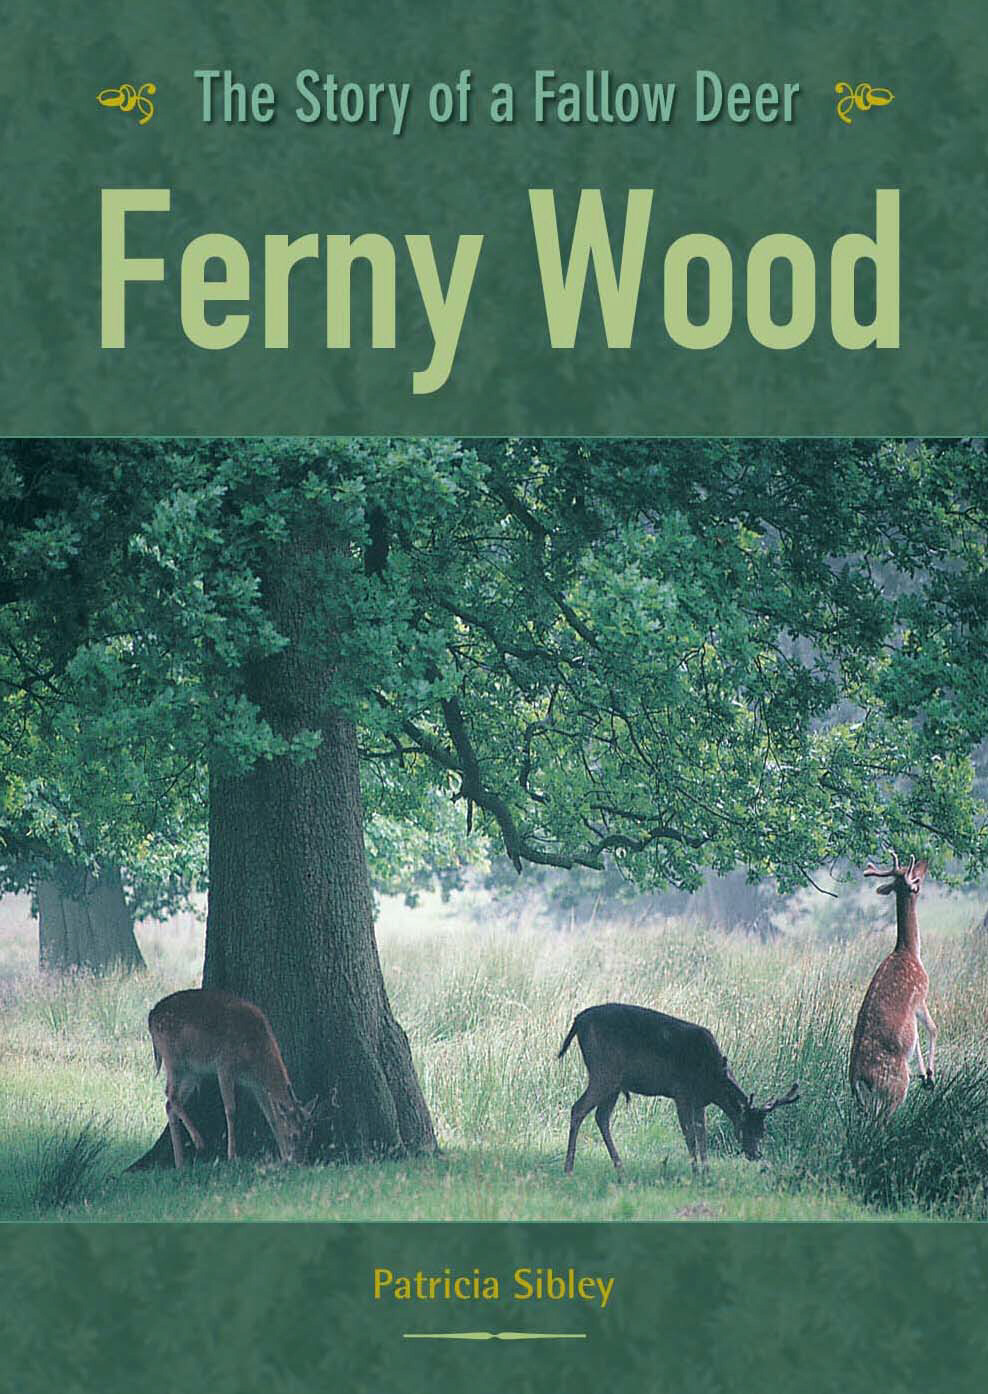 Ferny Wood, The Story of a Fallow Deer, Patricia Sibley